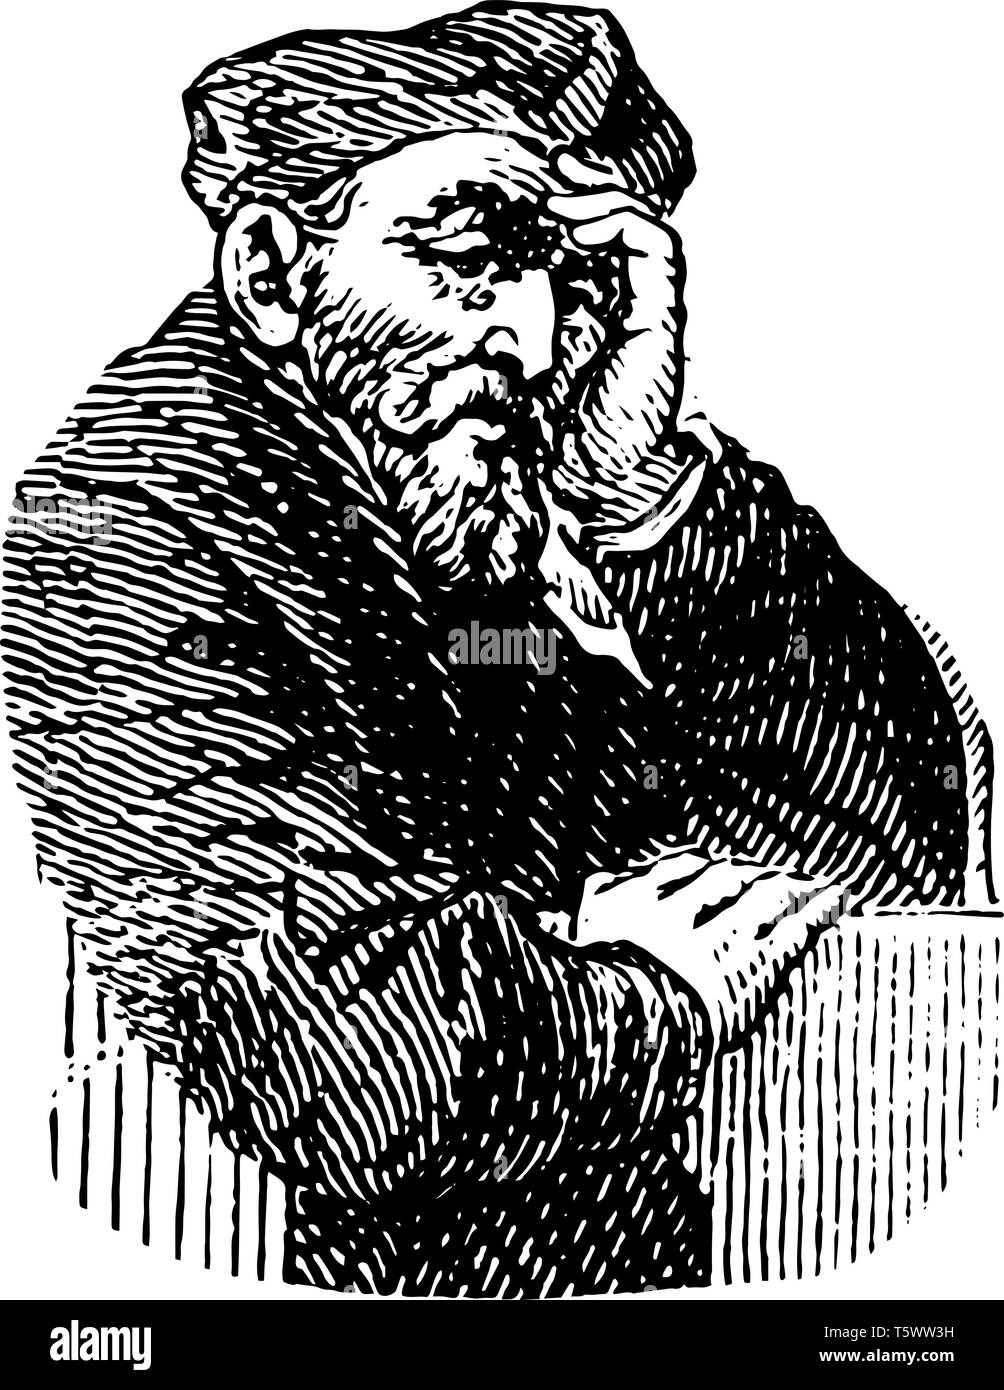 Philibert Delorme 1500 to 1577 he was a French architect writer and one of the great masters of the French Renaissance vintage line drawing or engravi - Stock Vector